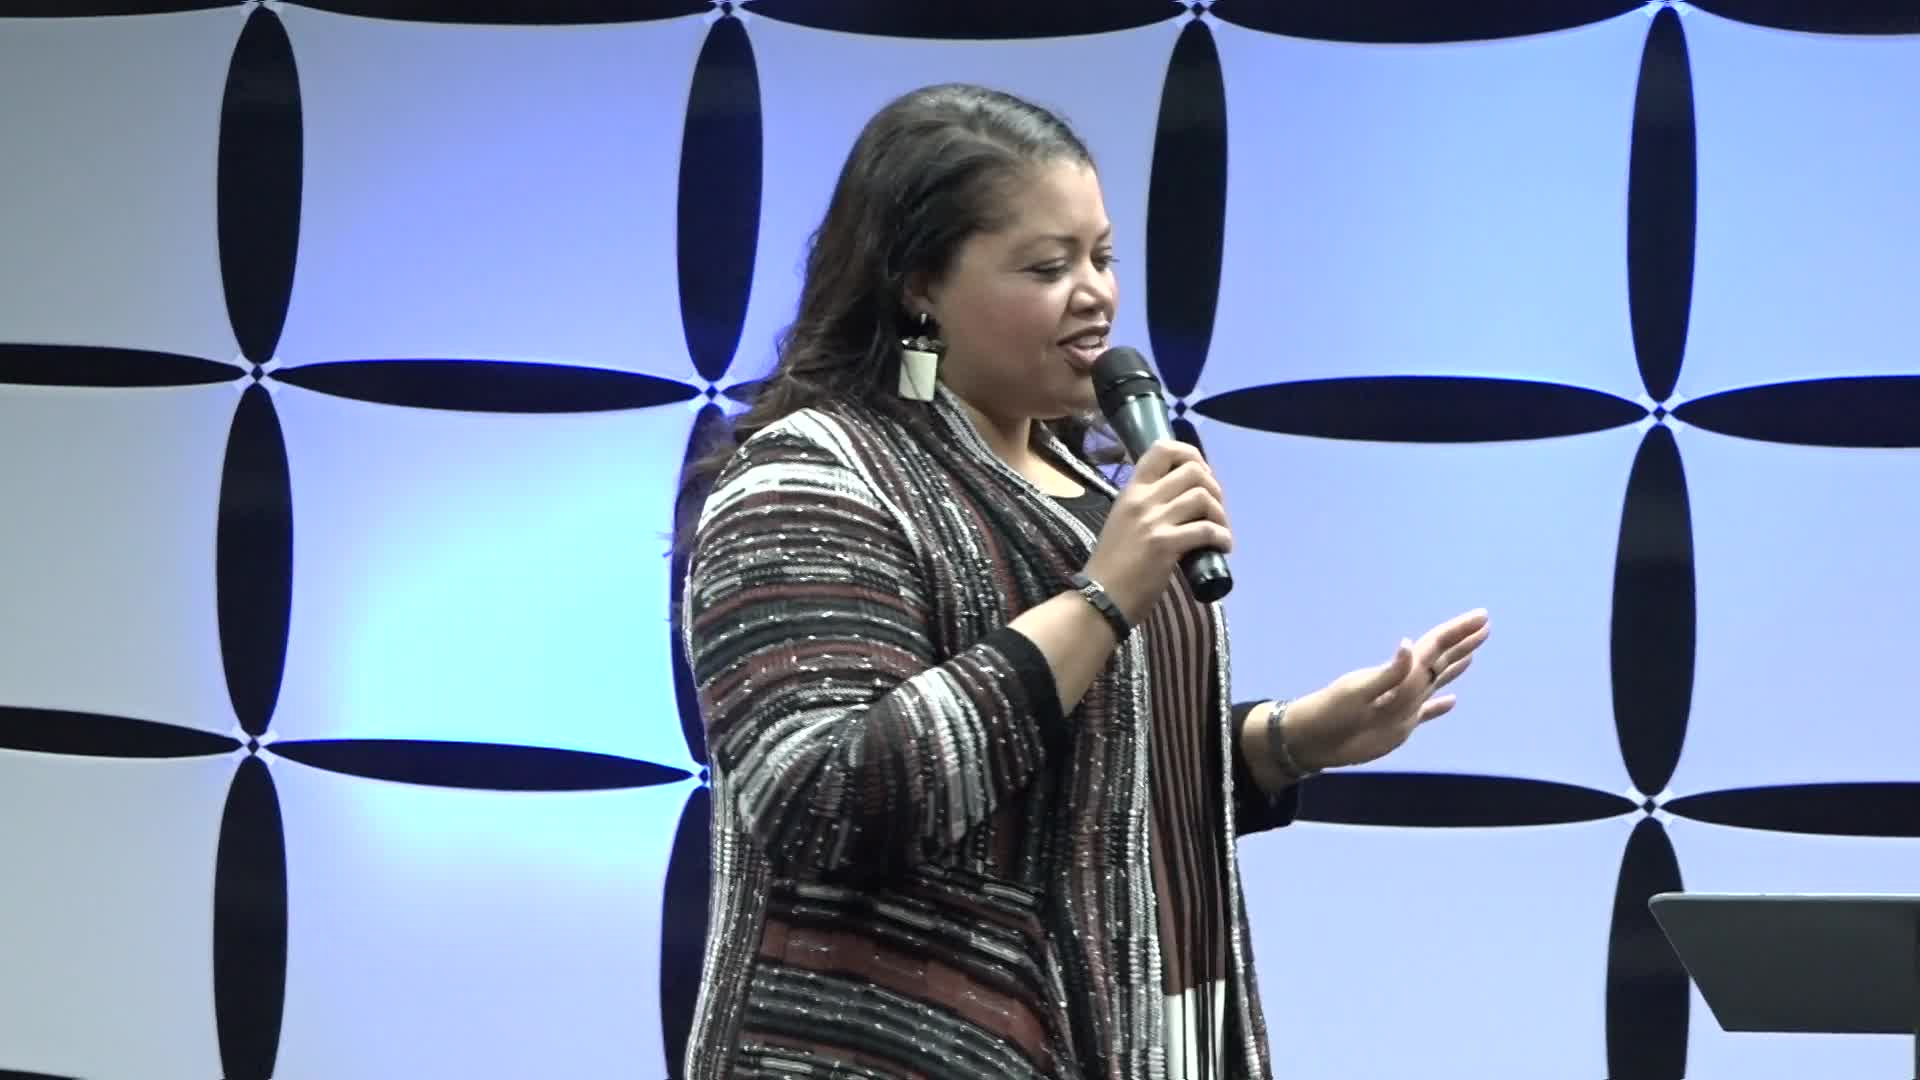 April Ripley at The Body of Christ Church International USA on 02-10-2019